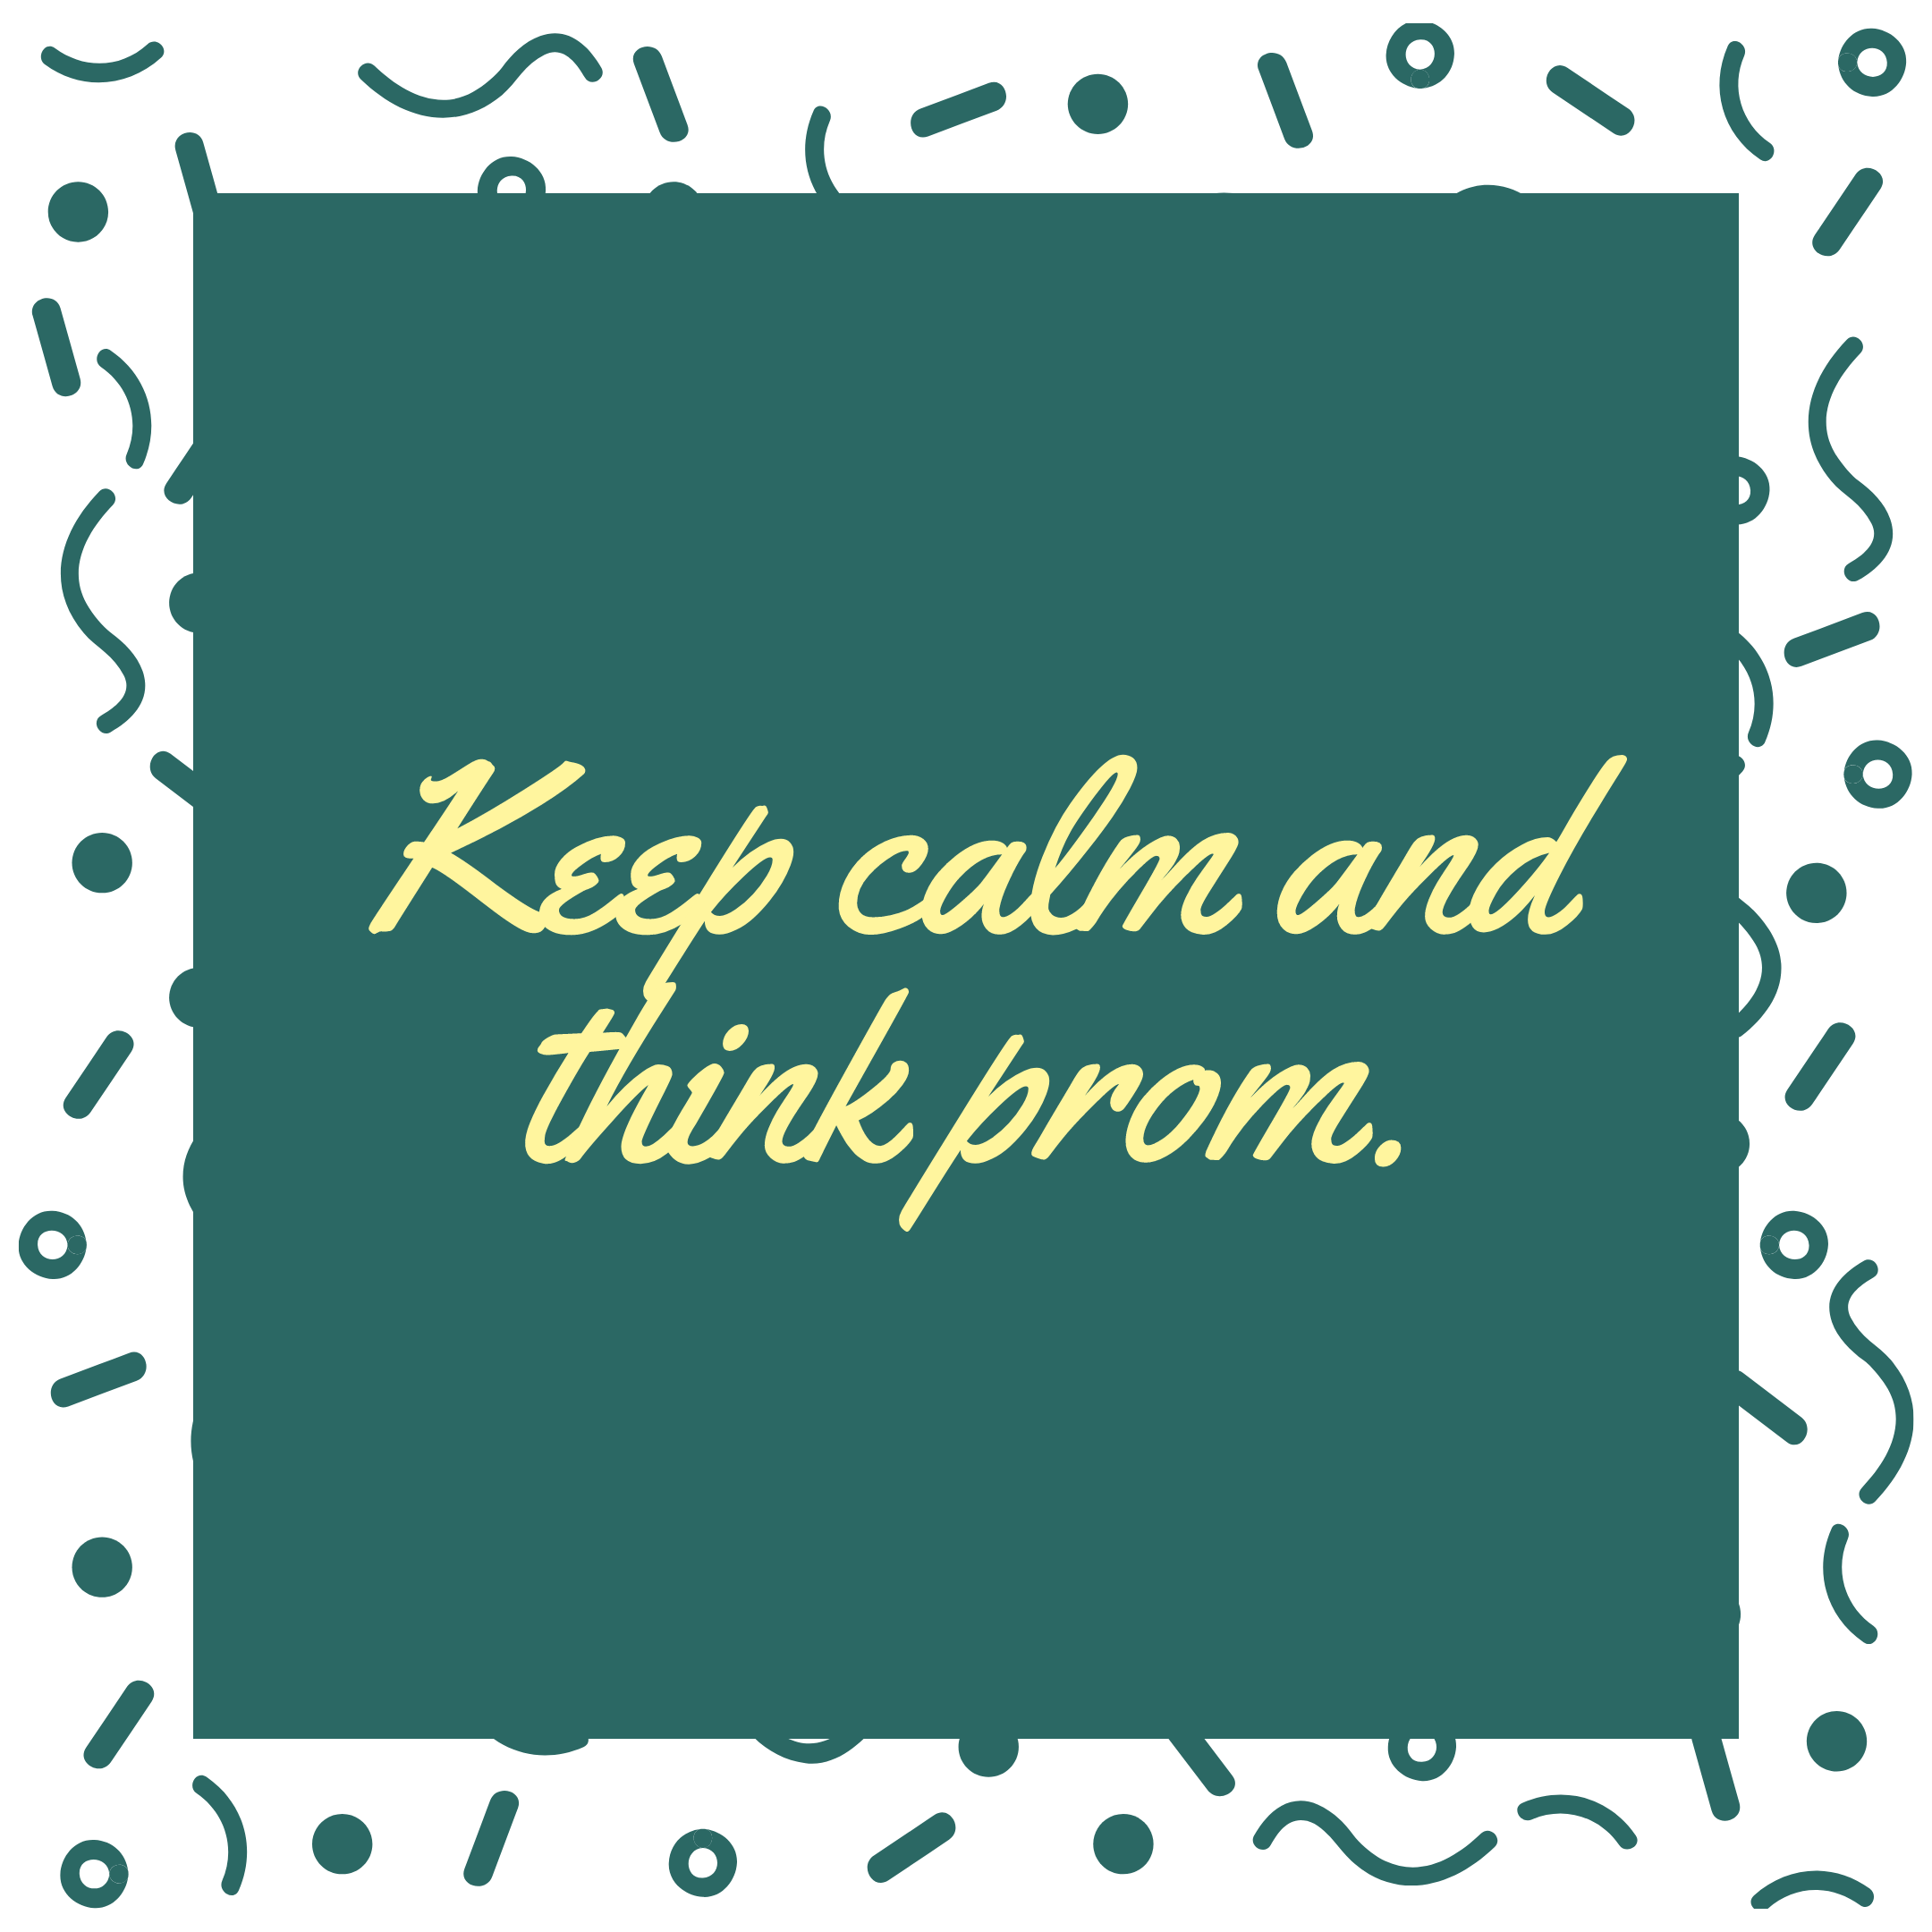 Keep calm and think prom.